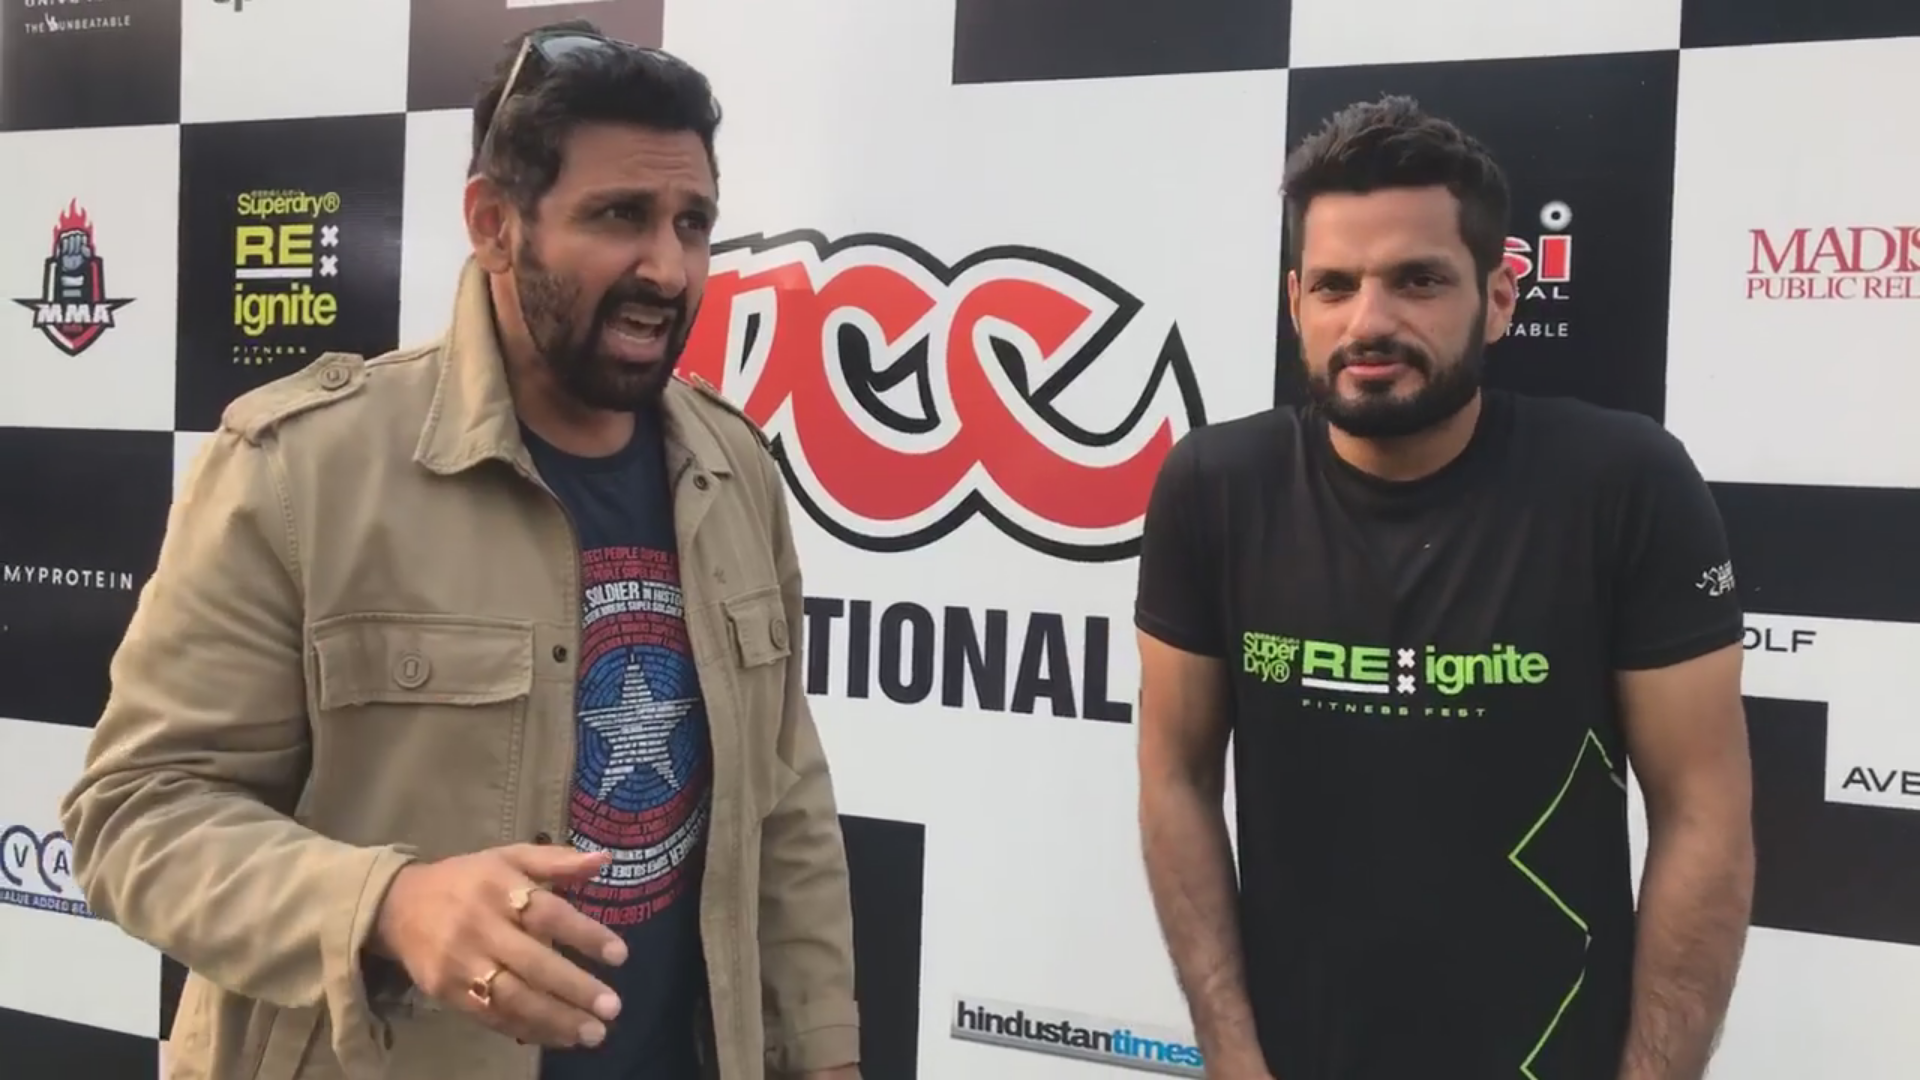 Full Results: Institute of Jiu-Jitsu and Crosstrain shine at ADCC India Nationals - ADCC India